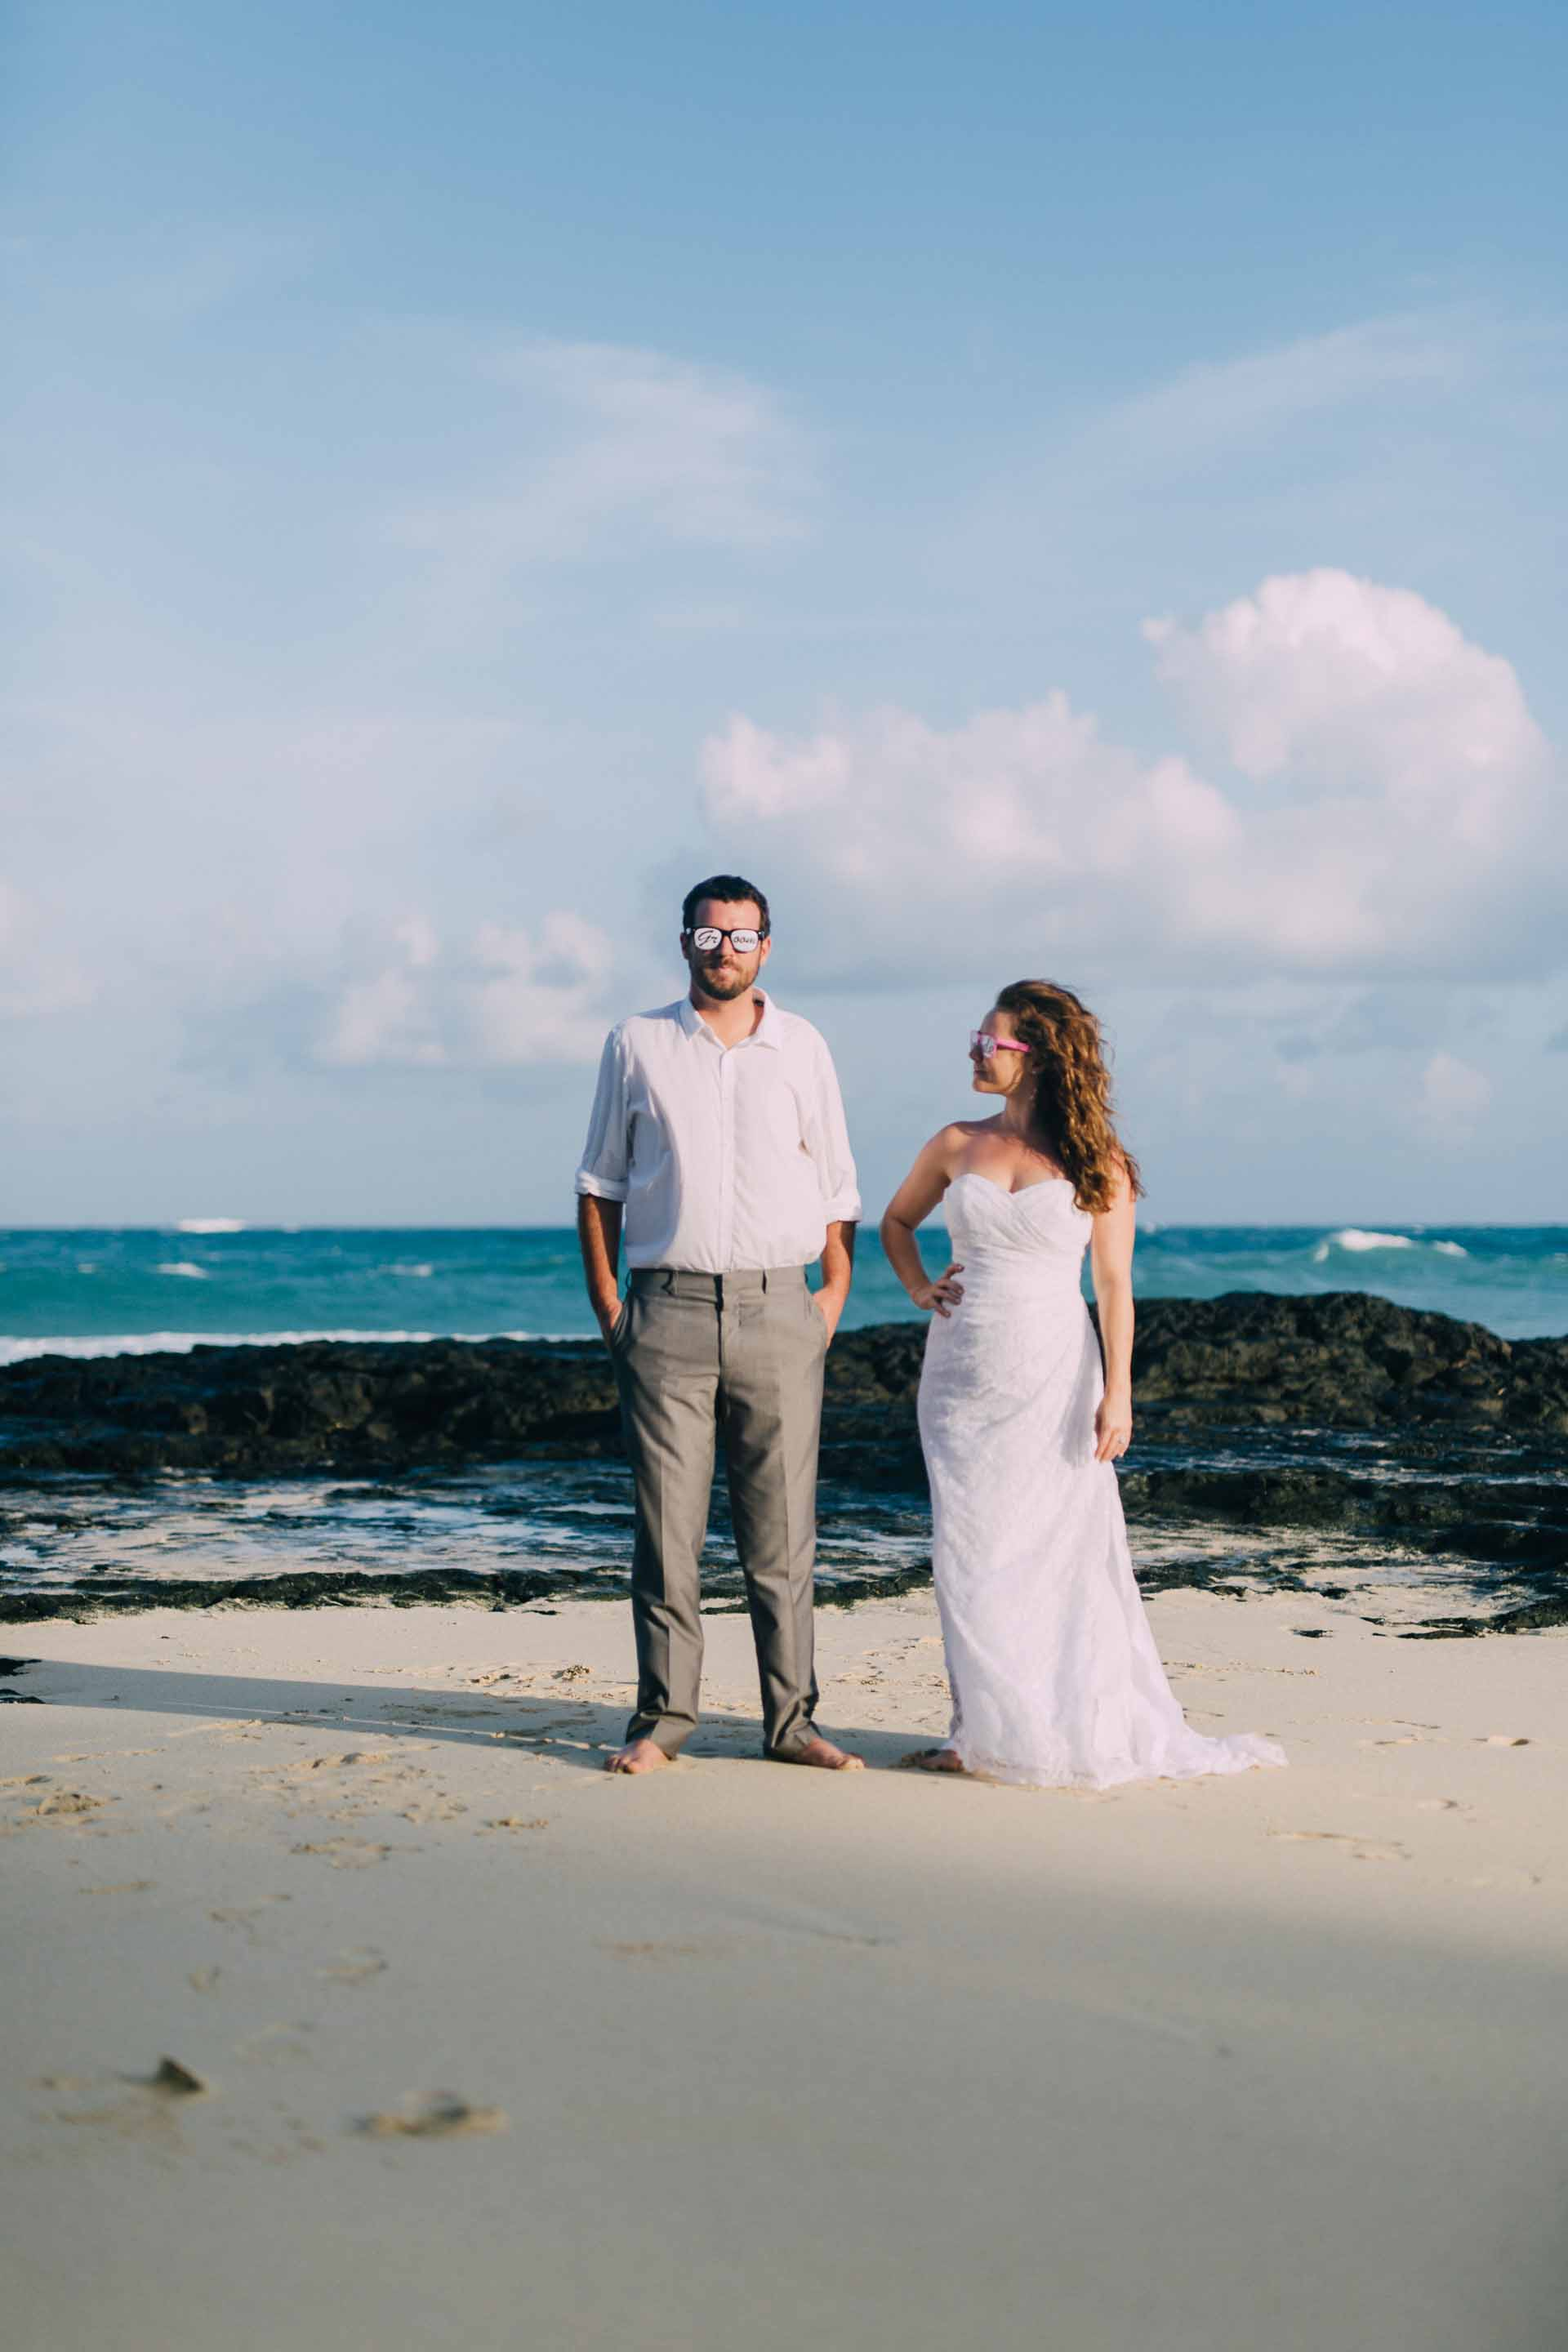 Newlyweds on the beach in Fiji for their trash the dress session the day after the wedding.